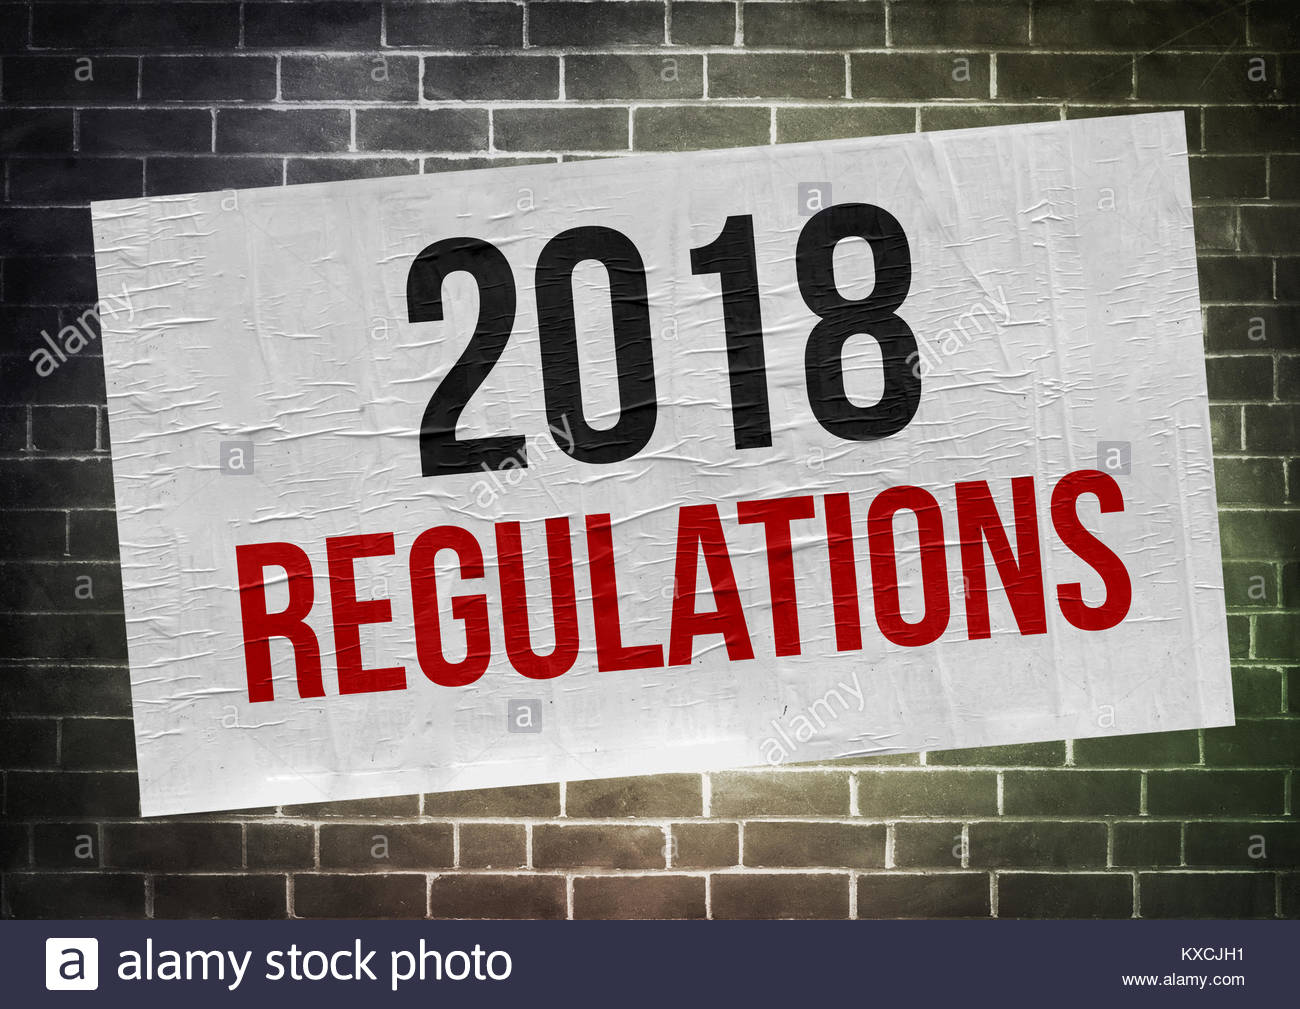 2018 Regulations - poster concept - Stock Image